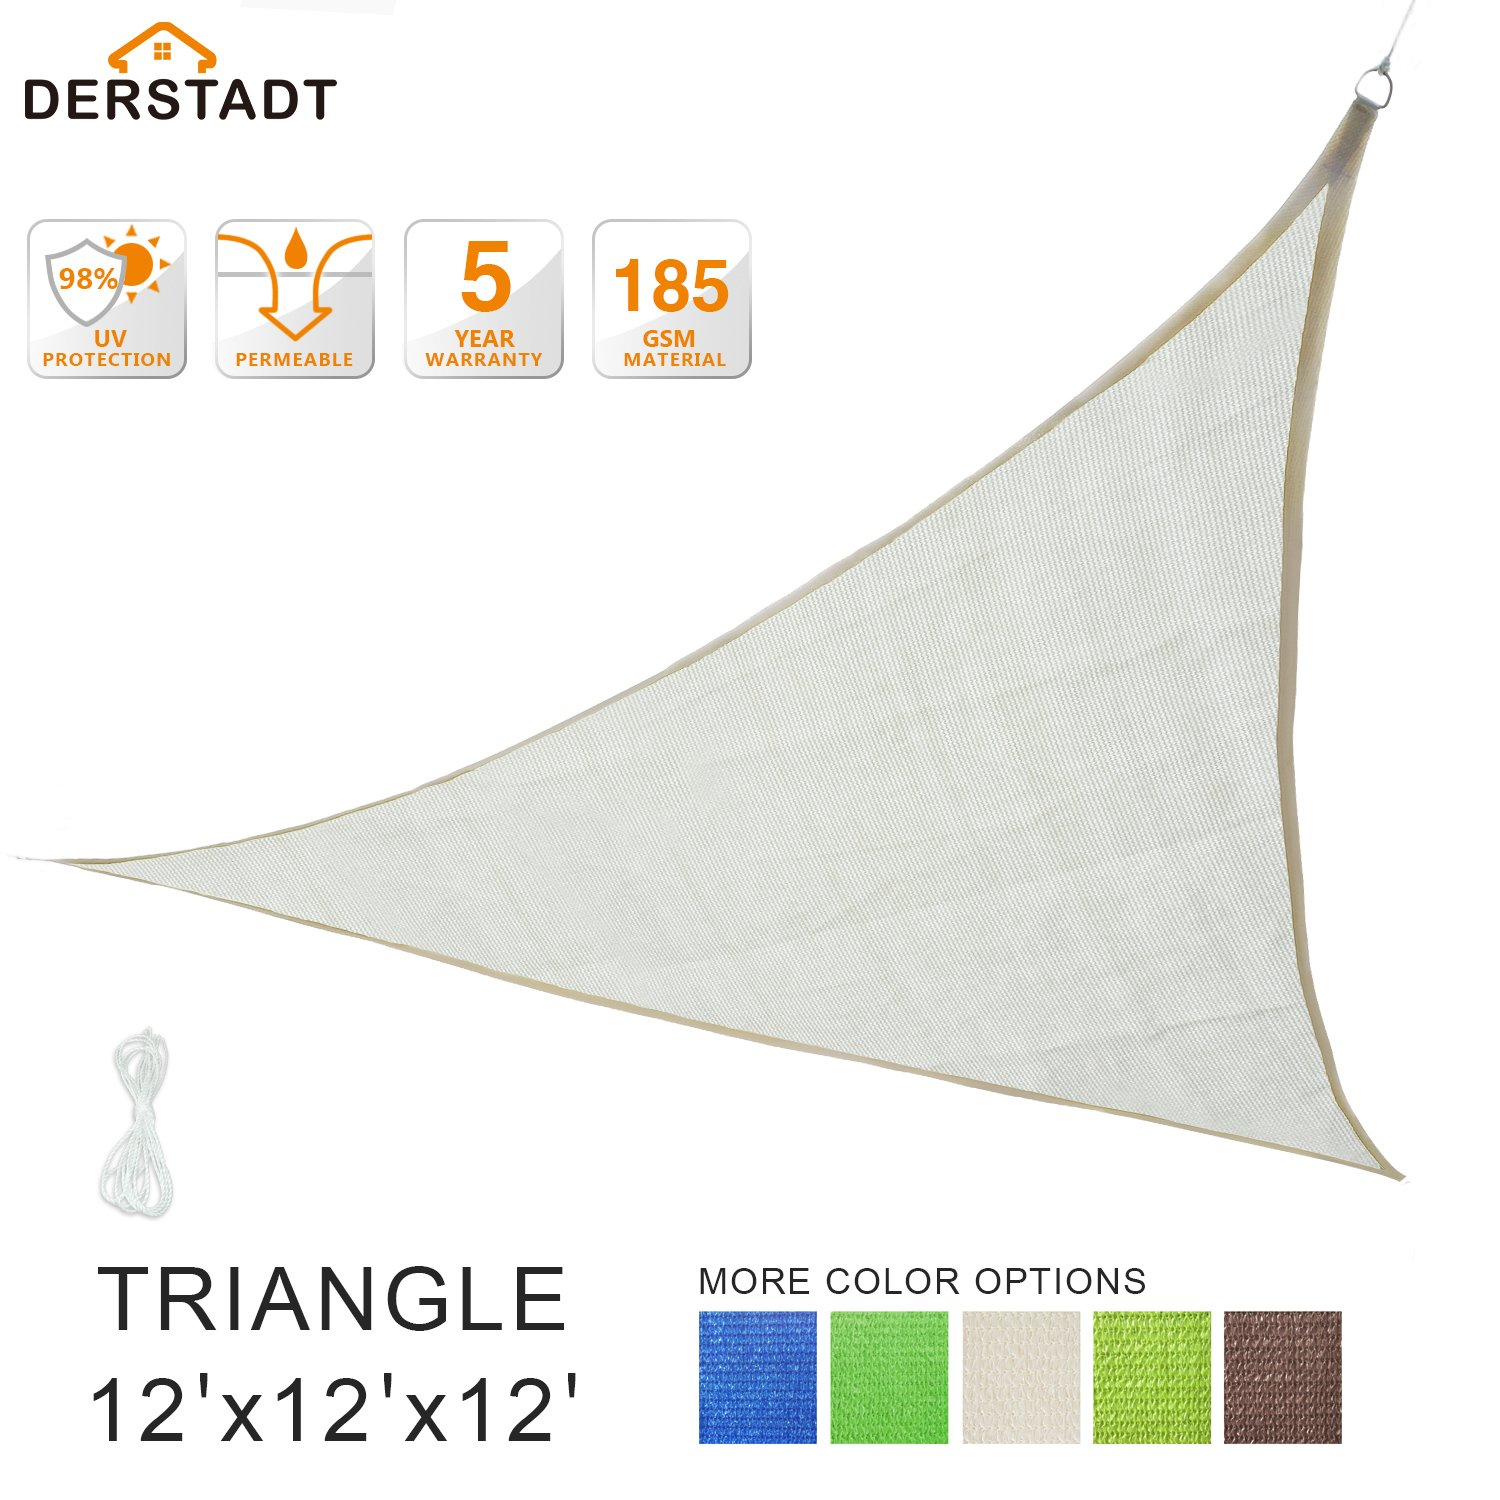 SUNLAX 13 x 13 x 13 Triangle Sun Shade Sail Sand Color UV Resistant for Outdoor Patio Lawn Garden Activities